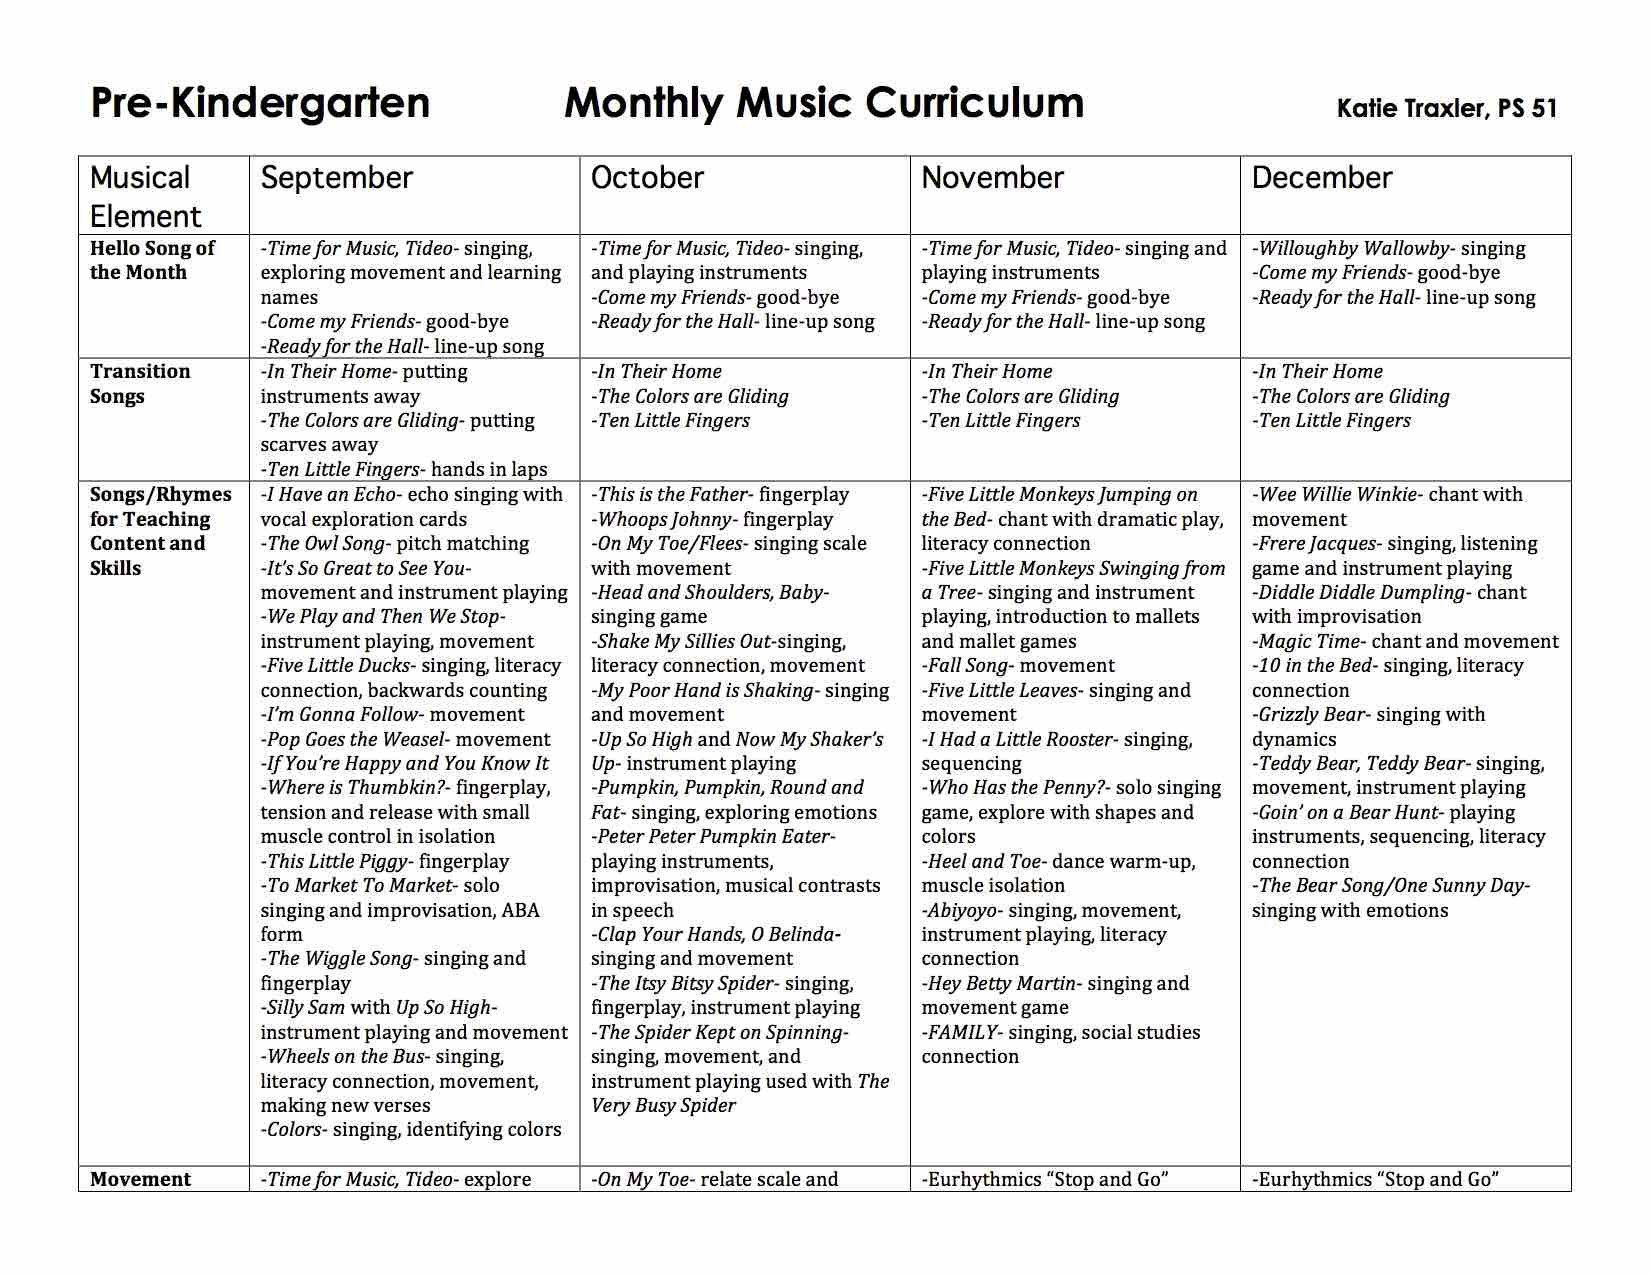 Music curriculum map template gallery template design ideas for Music curriculum map template